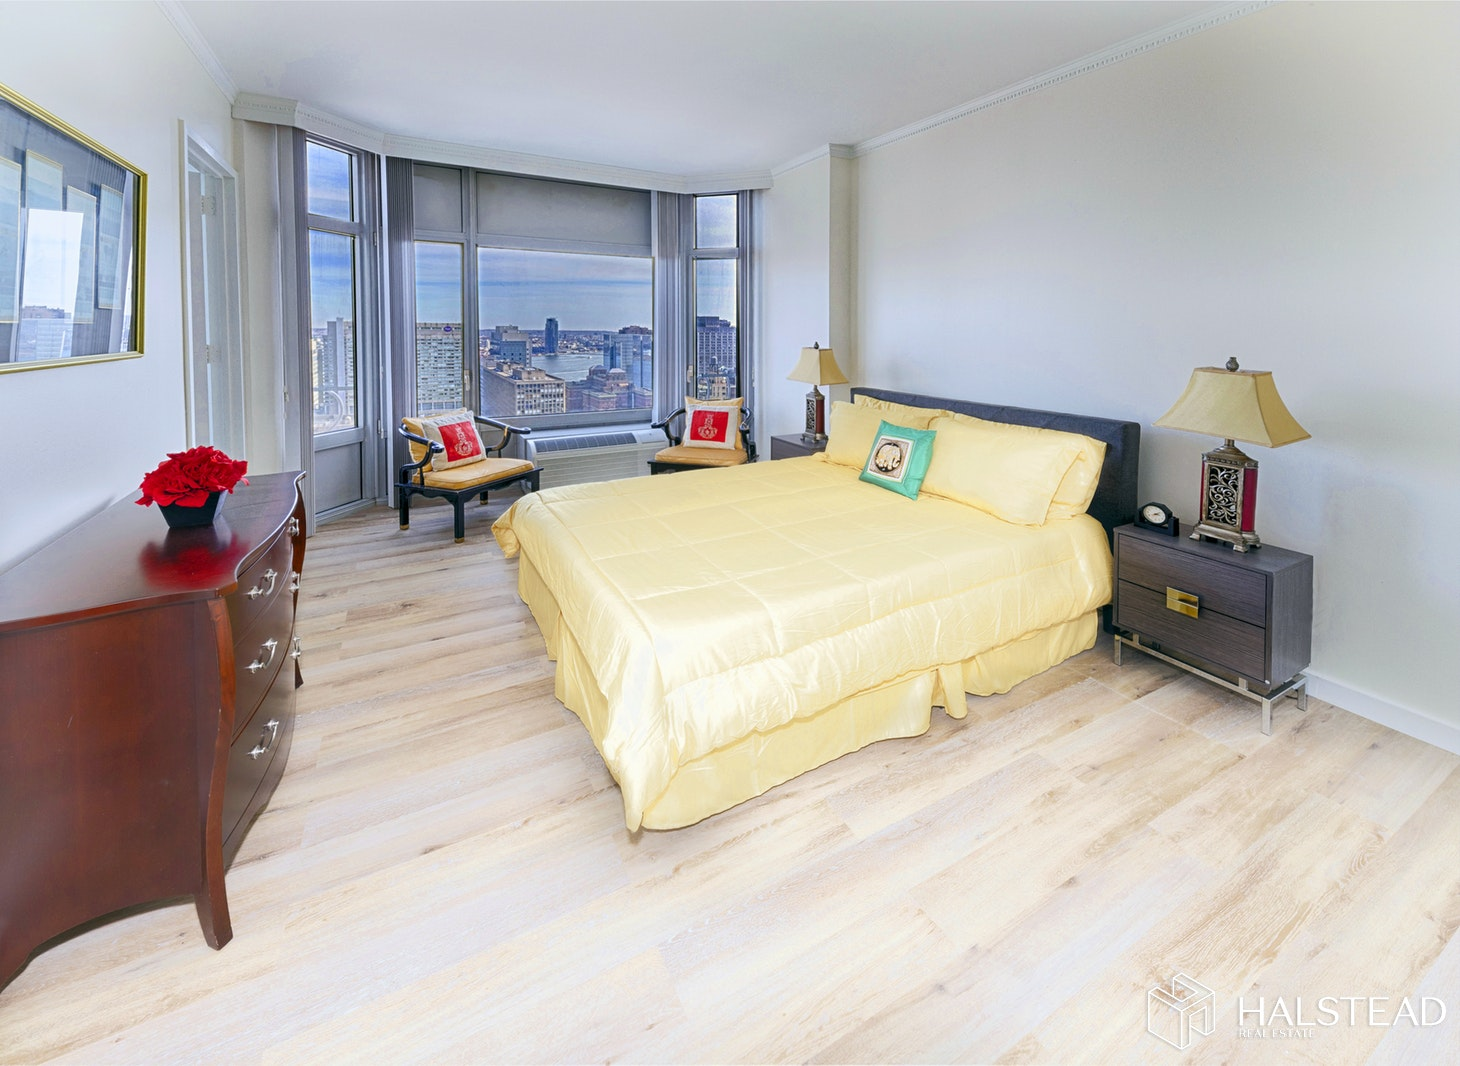 200 East 32nd Street 28e, Murray Hill Kips Bay, NYC, 10016, $1,650,000, Property For Sale, Halstead Real Estate, Photo 4